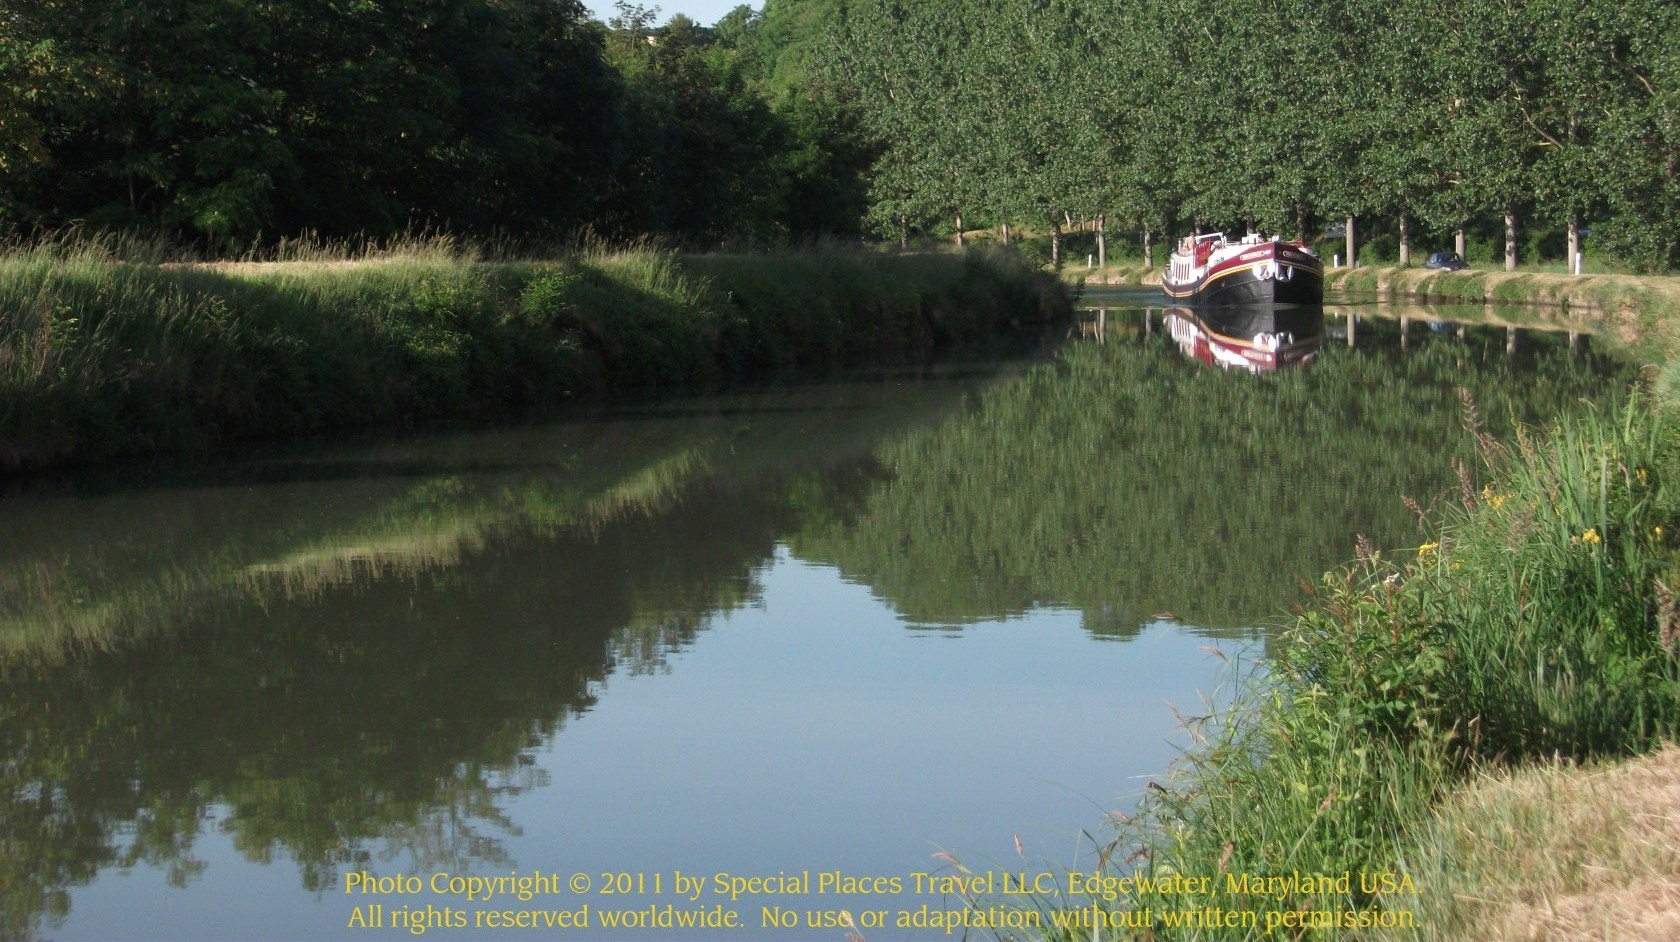 Barges In France, Barges In Europe: for the experience of a lifetime  -- pampered cruises, exceptional cuisine, wines, intimate, crew-guided excursions  into the heart of France and other countries in Europe.  Contact Barges in France, division of Special Places Travel at  info@specialplacestravel.com, or phone 1-877-642-2743 in US,  or 001.443.321.3614 outside of the US.